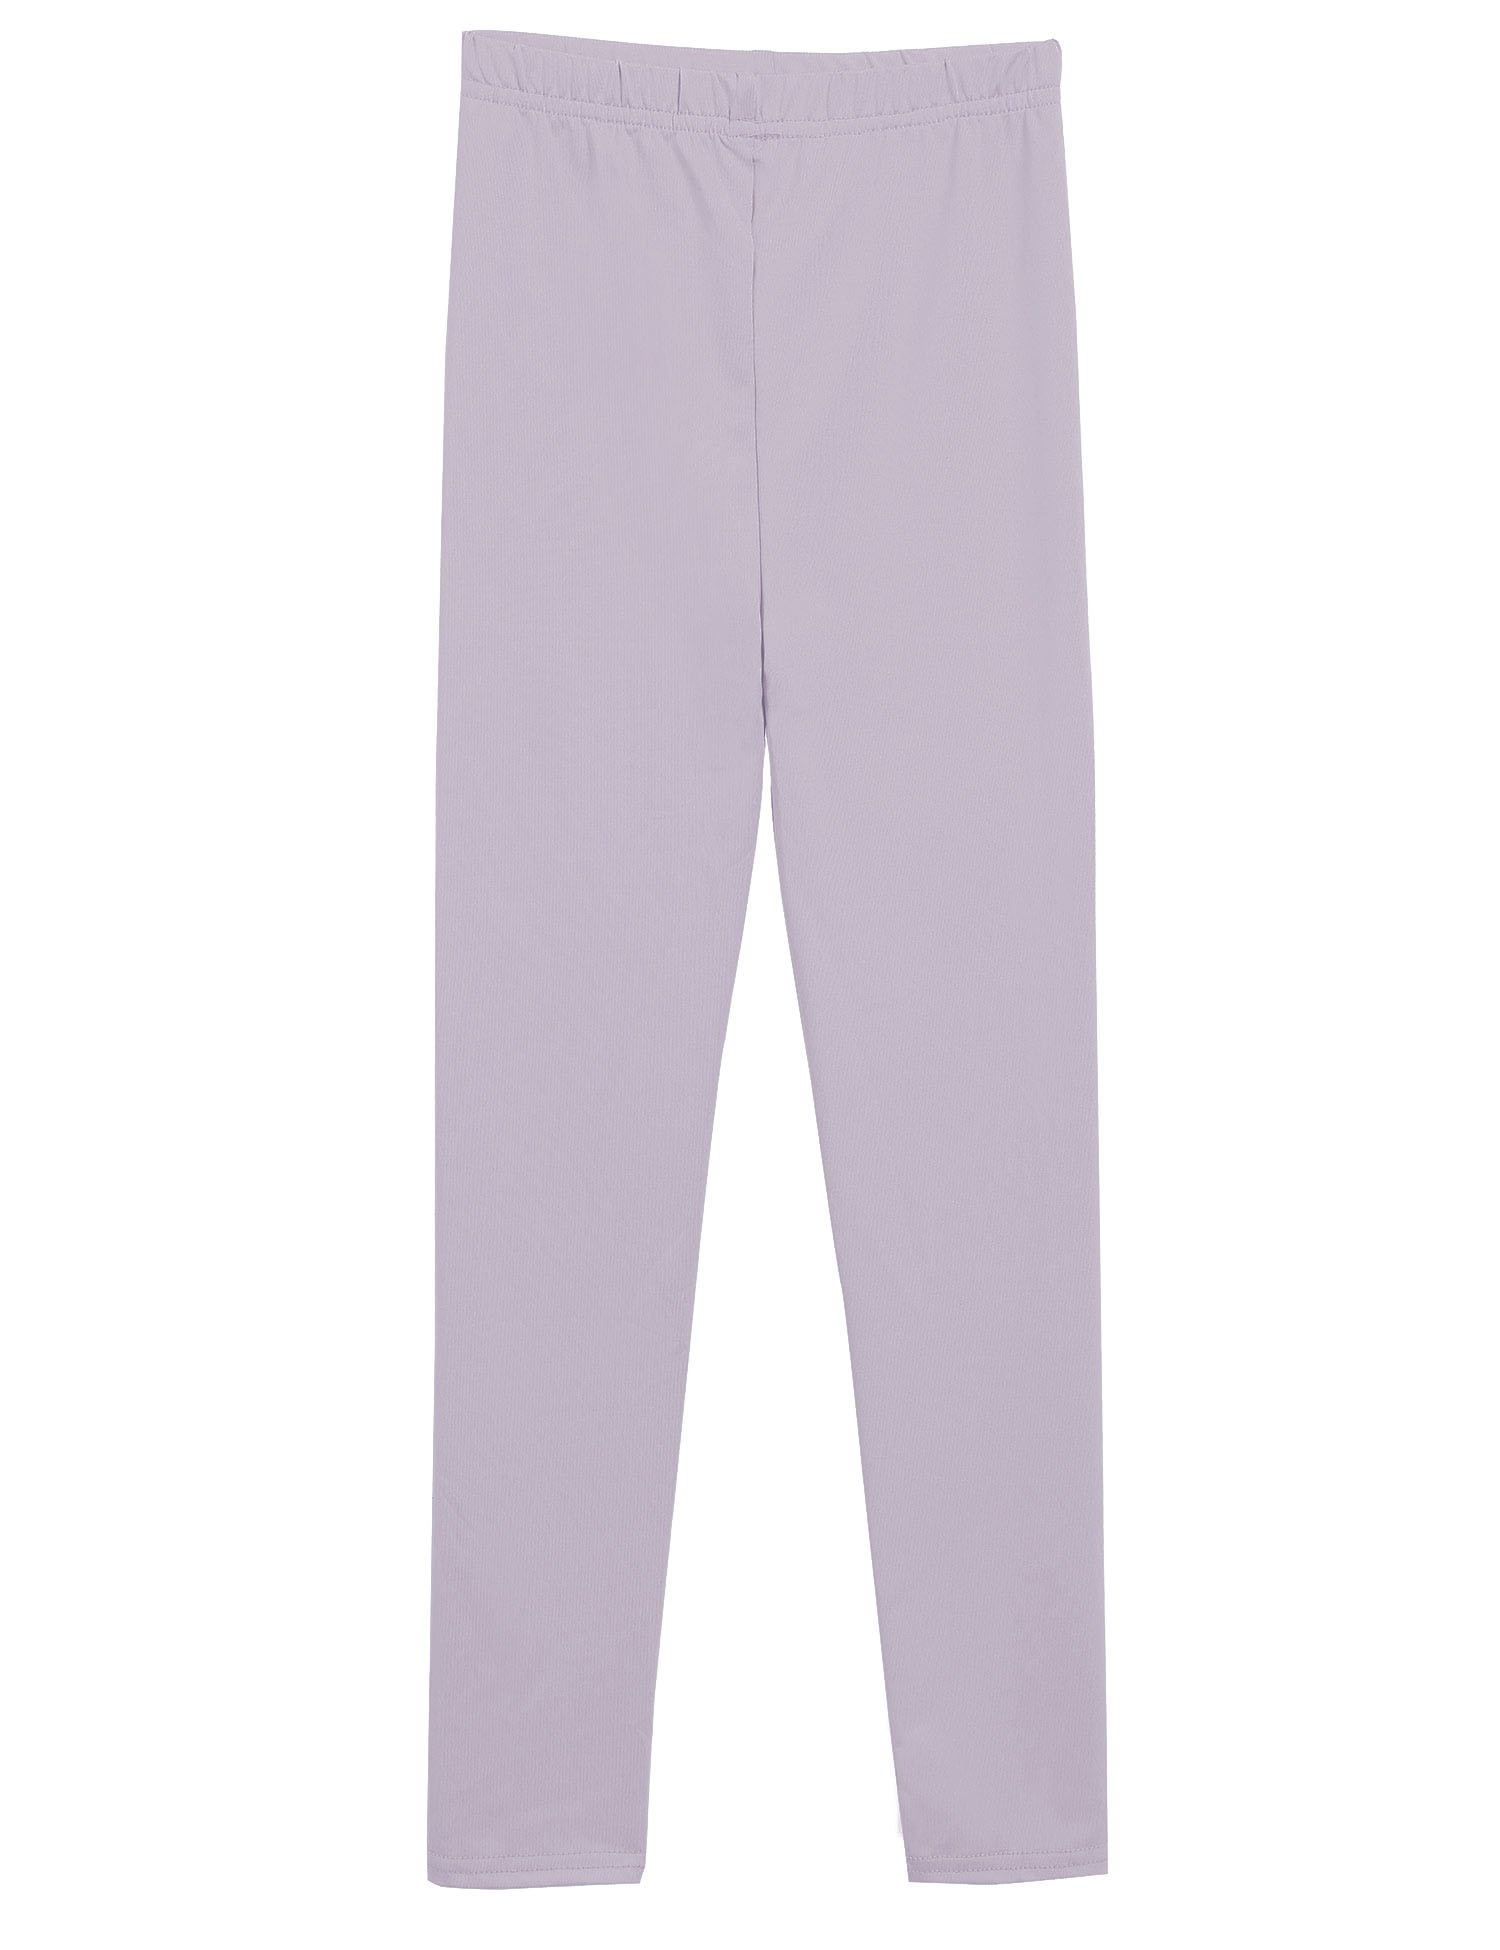 Arshiner Little Girls Solid Color Leggings Tights, Gray, 100 (for ages 7-8 years)